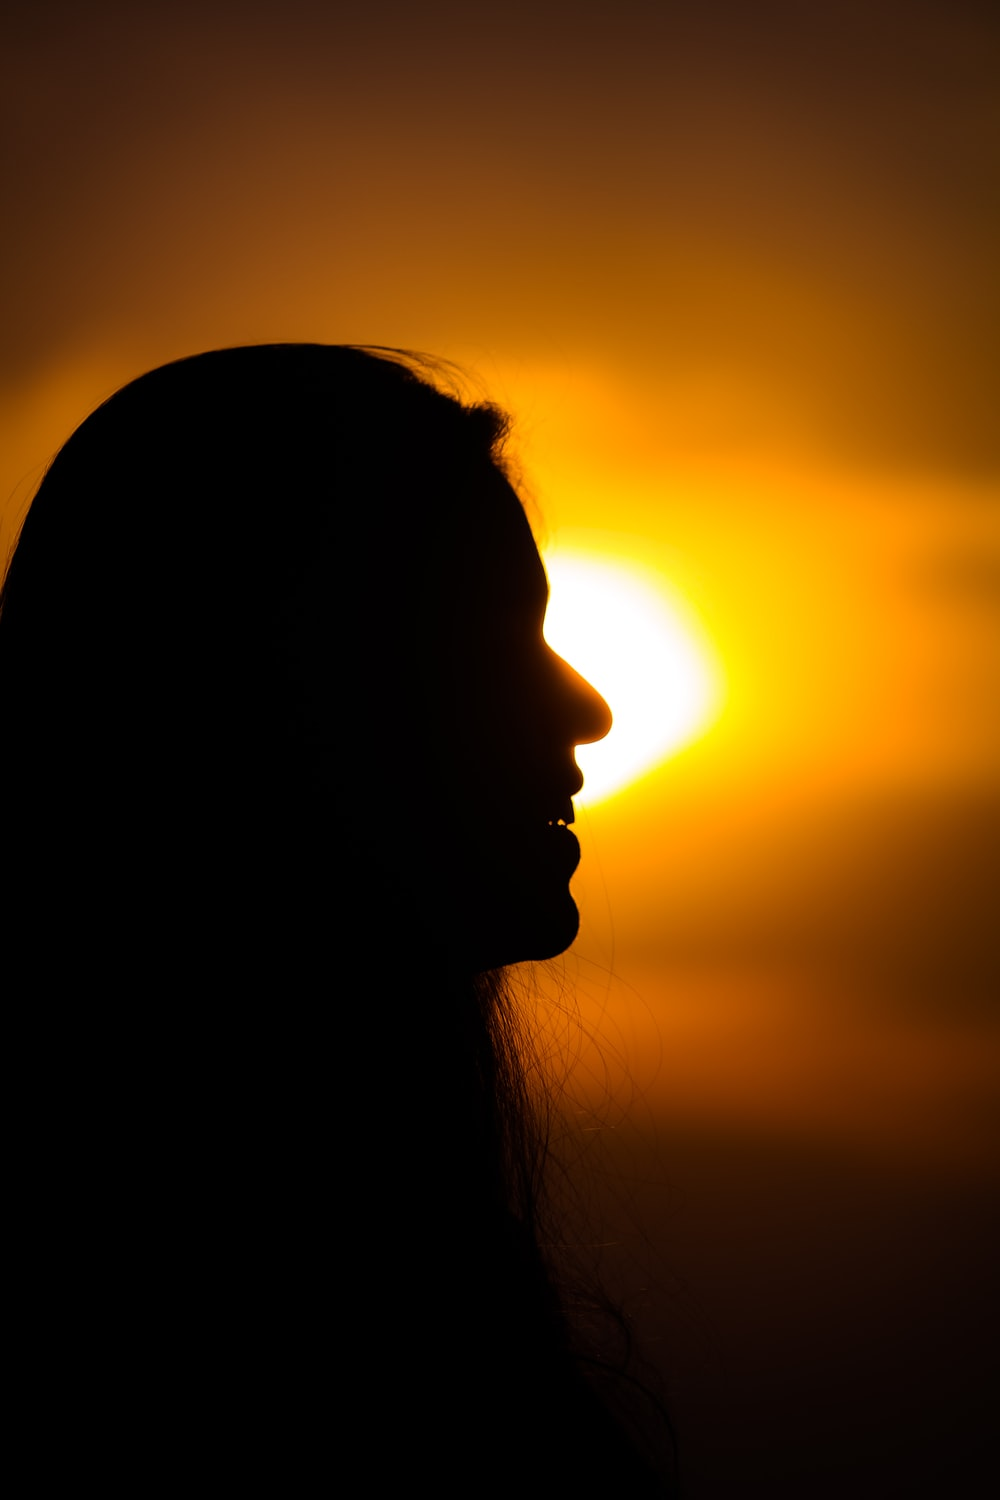 silhouette photography of smiling woman